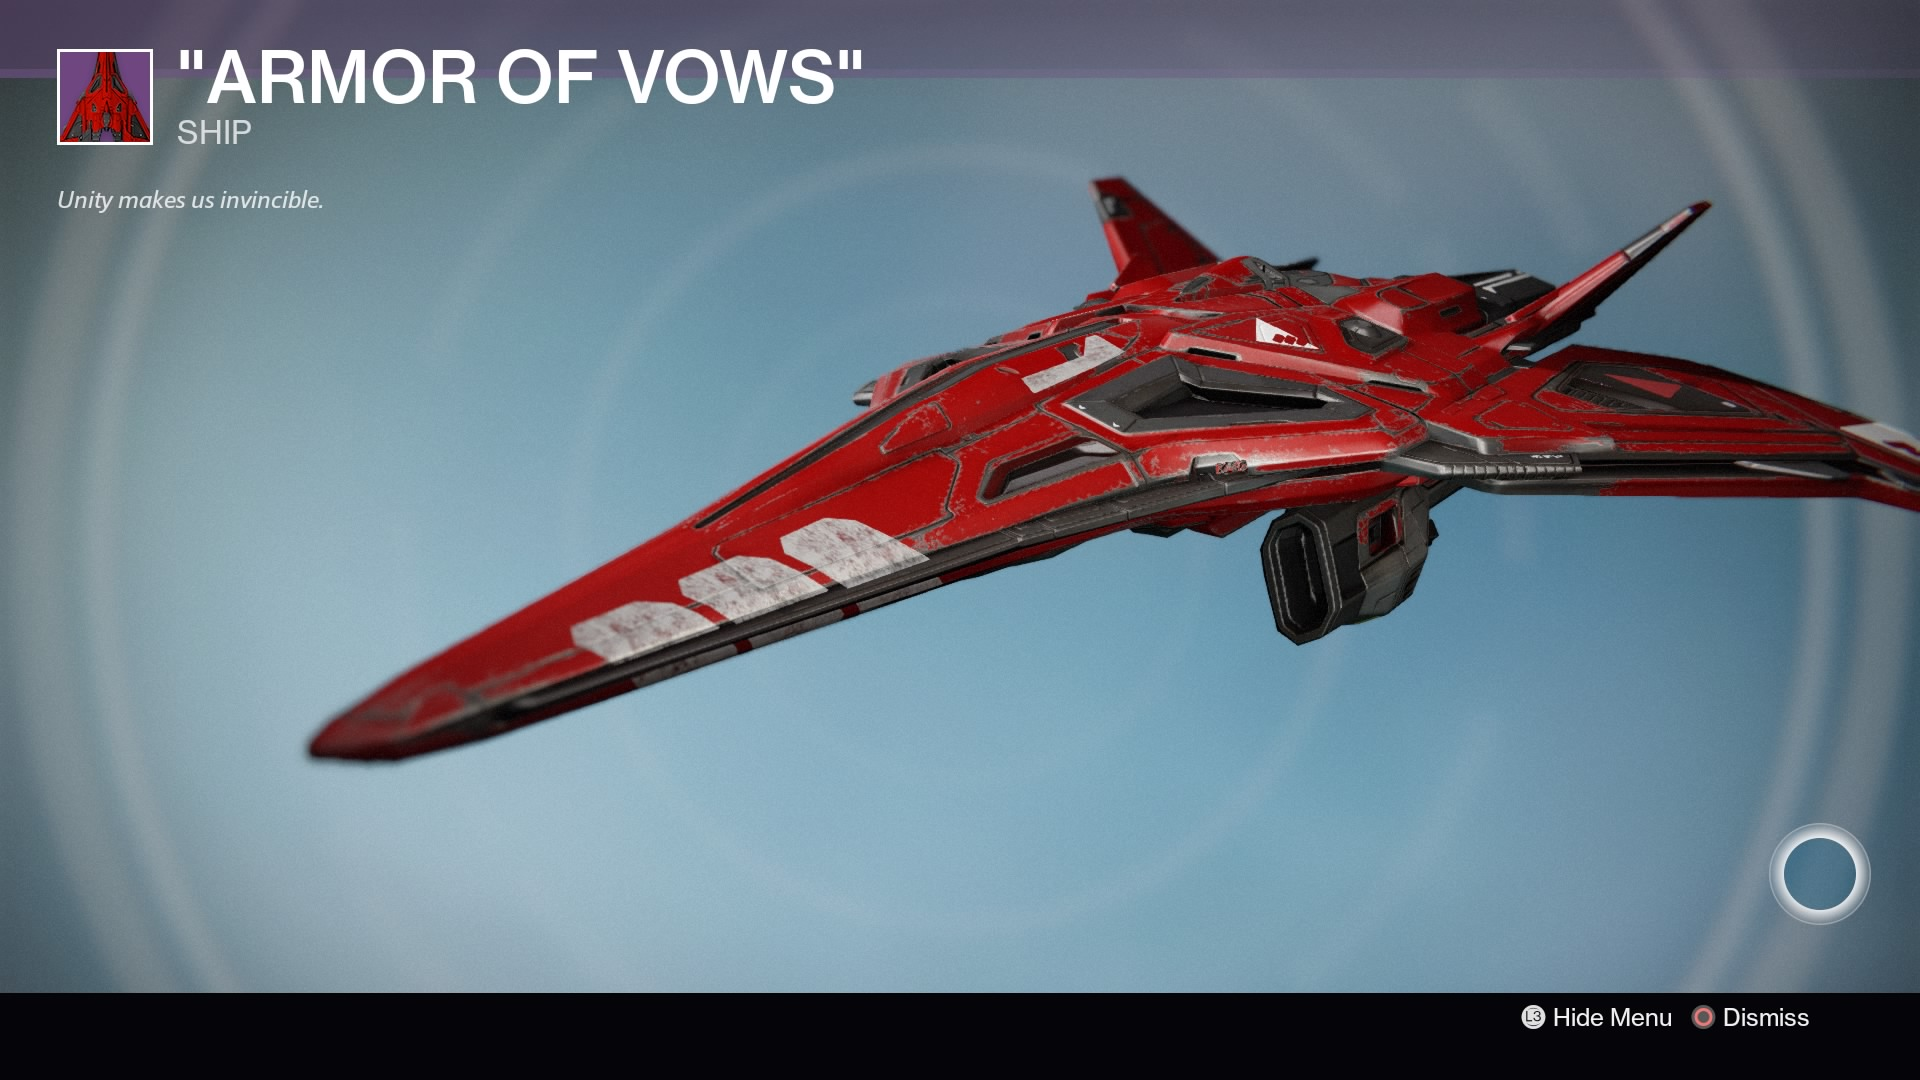 Armor of Vows